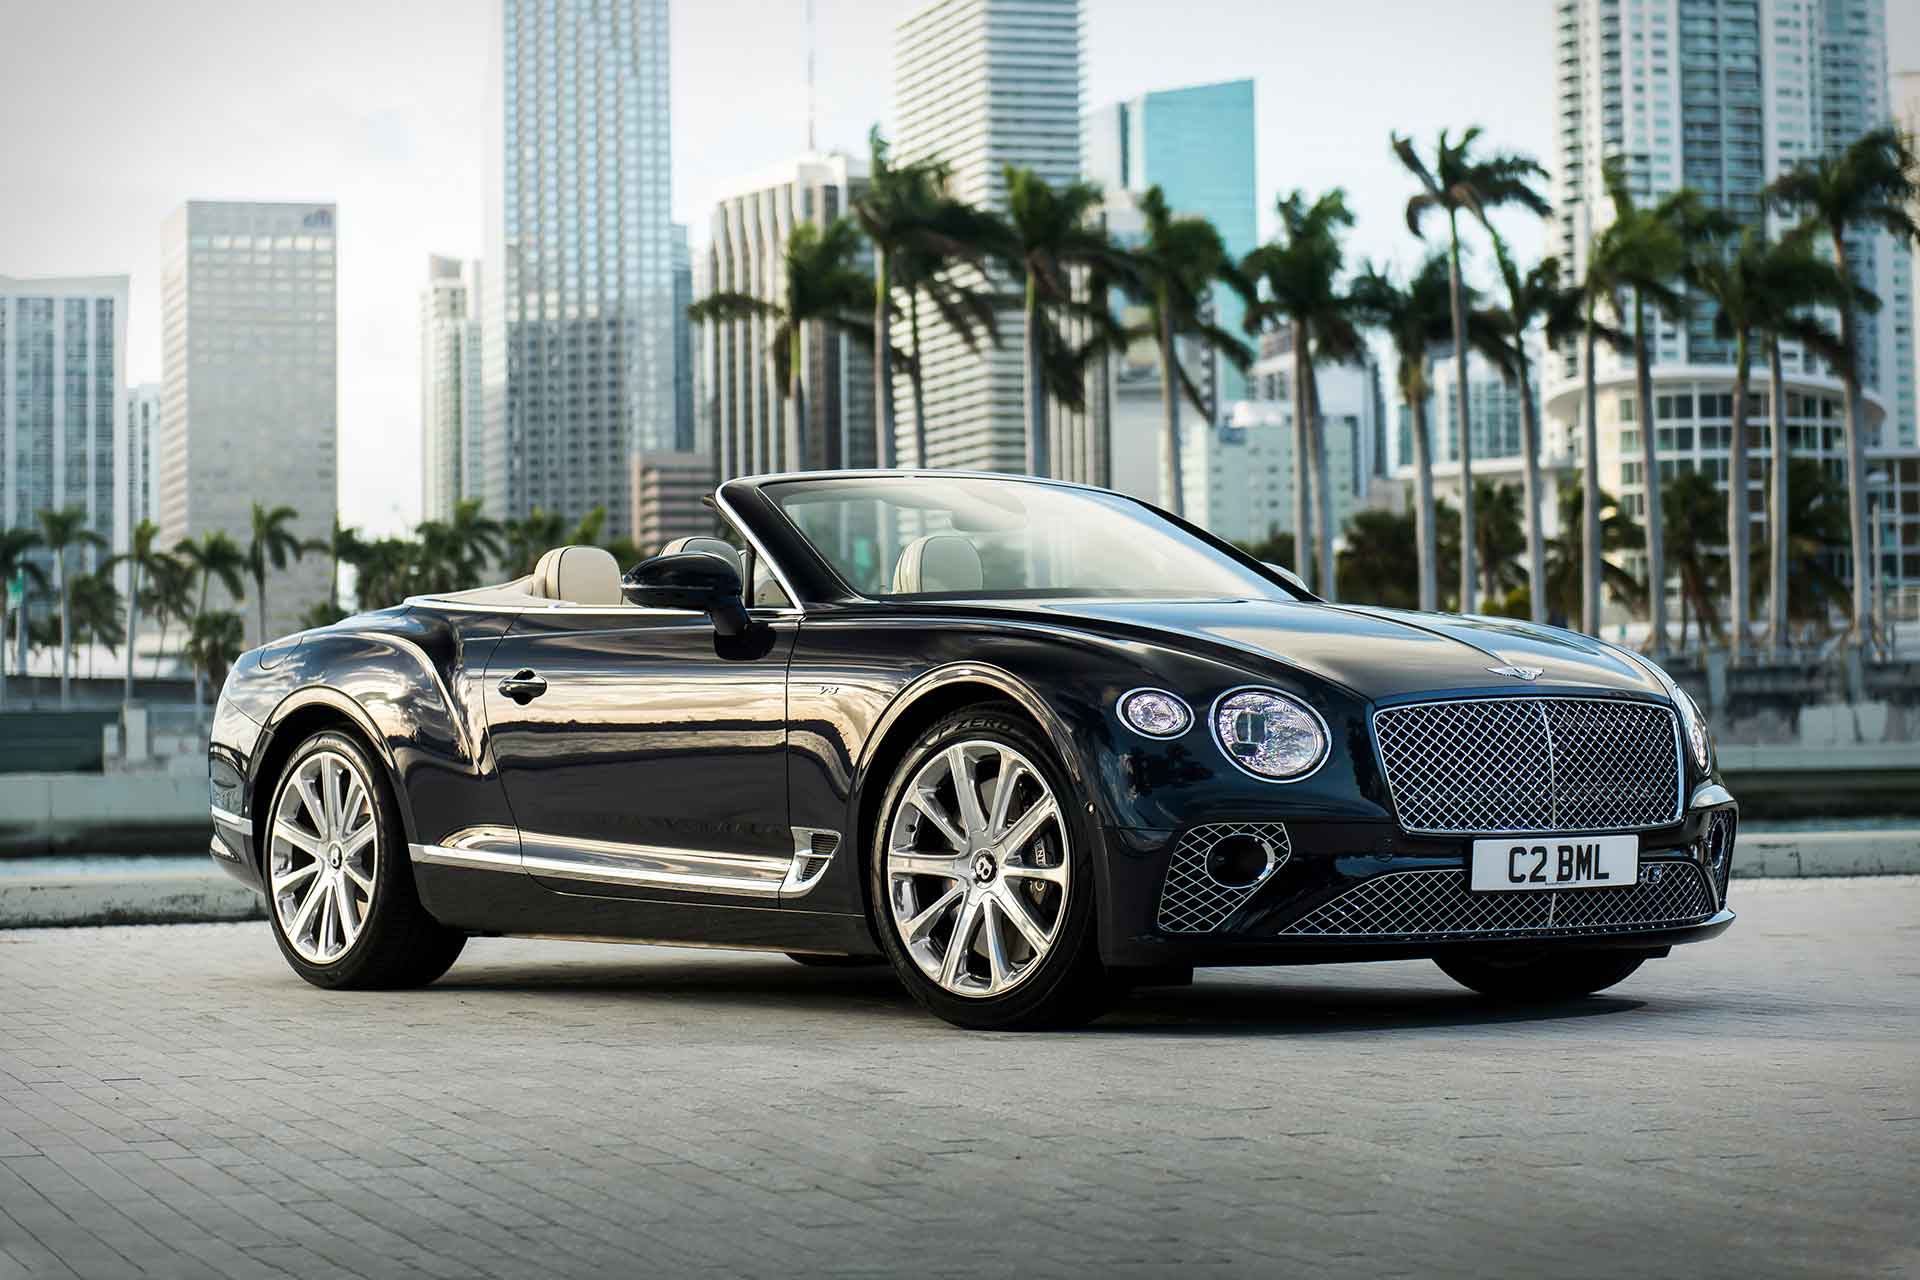 98 A 2020 Bentley Gtc Overview